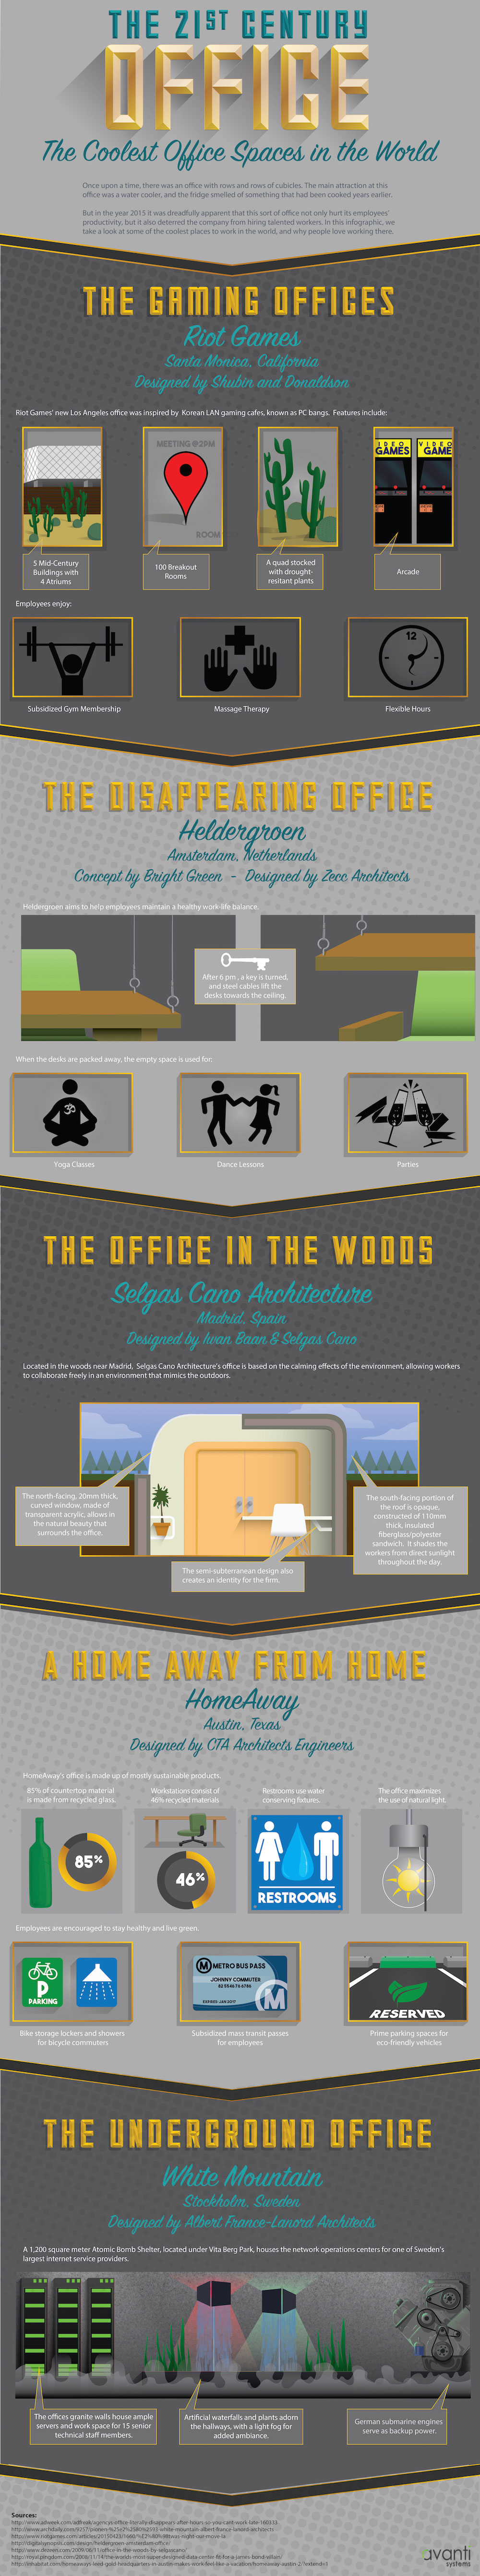 coolest-offices-in-the-world